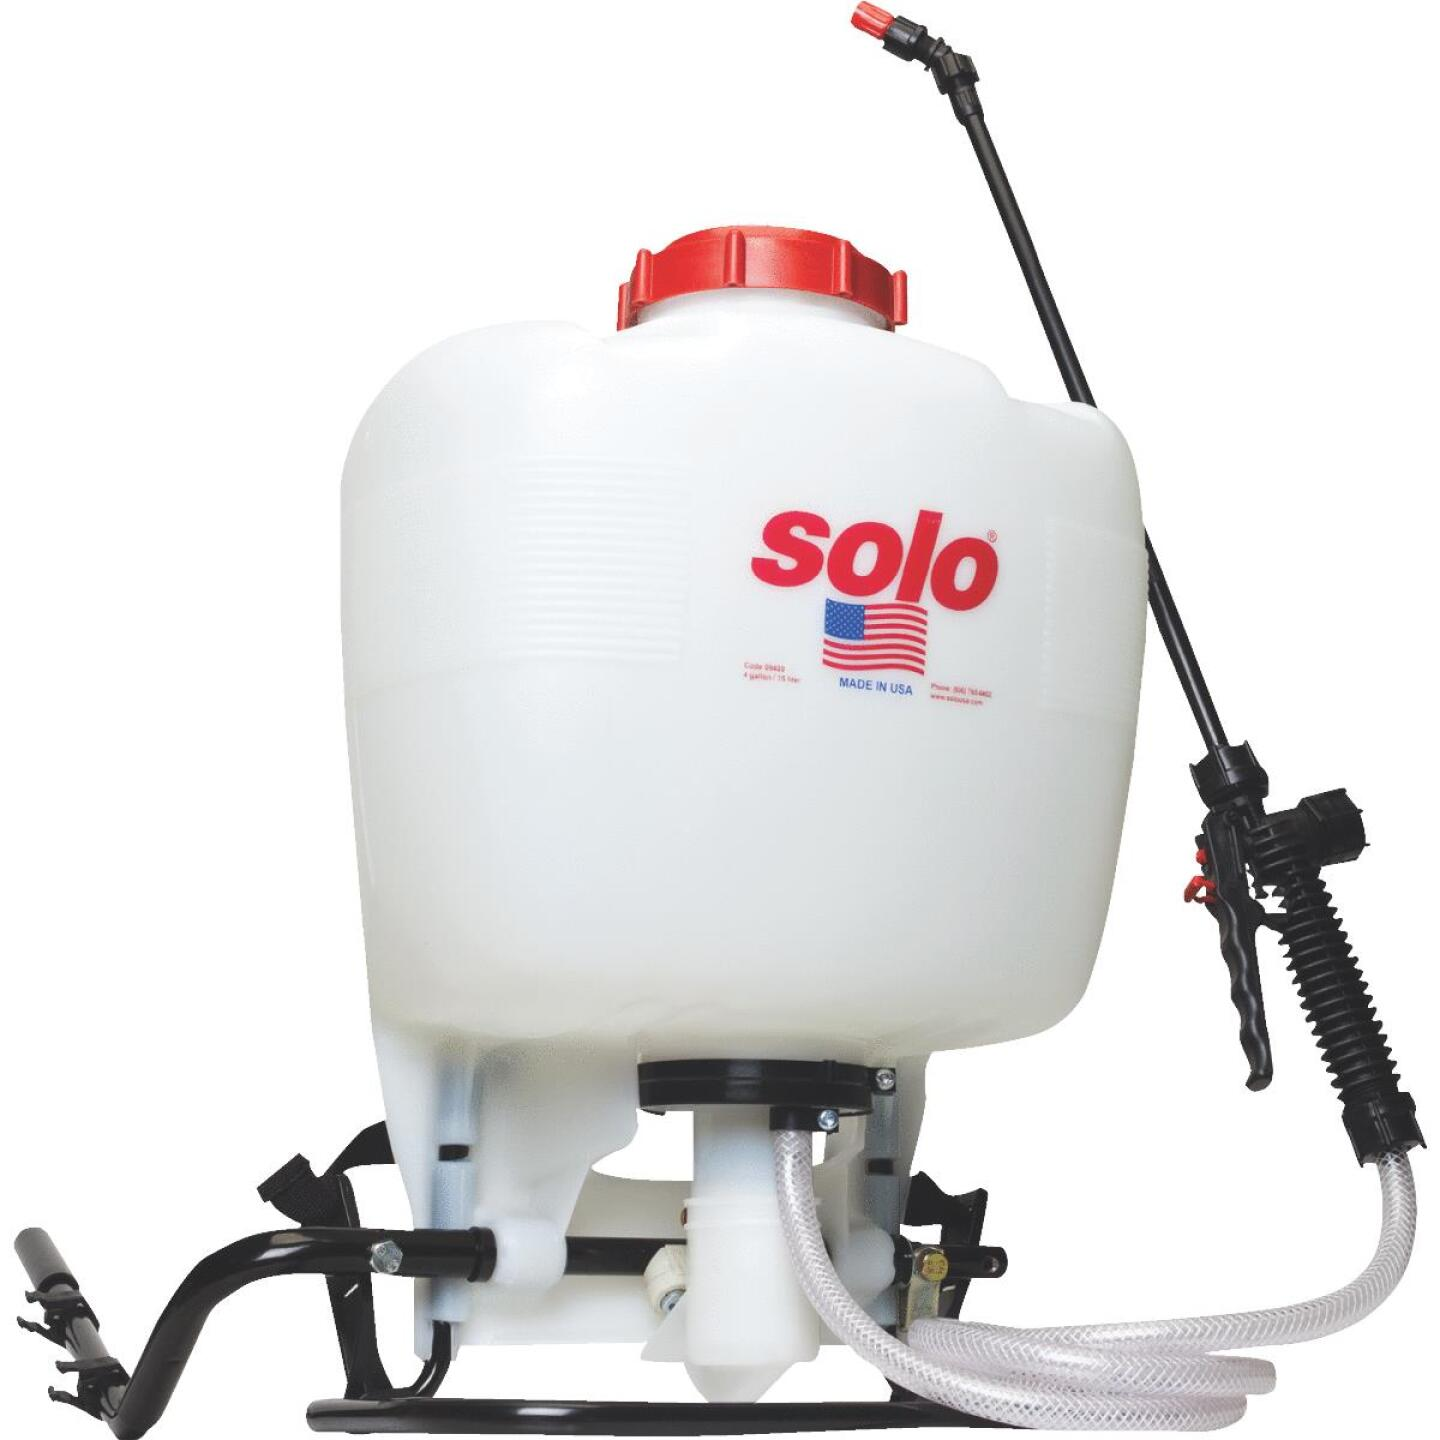 Solo 425 4 Gal. Backpack Sprayer Image 4